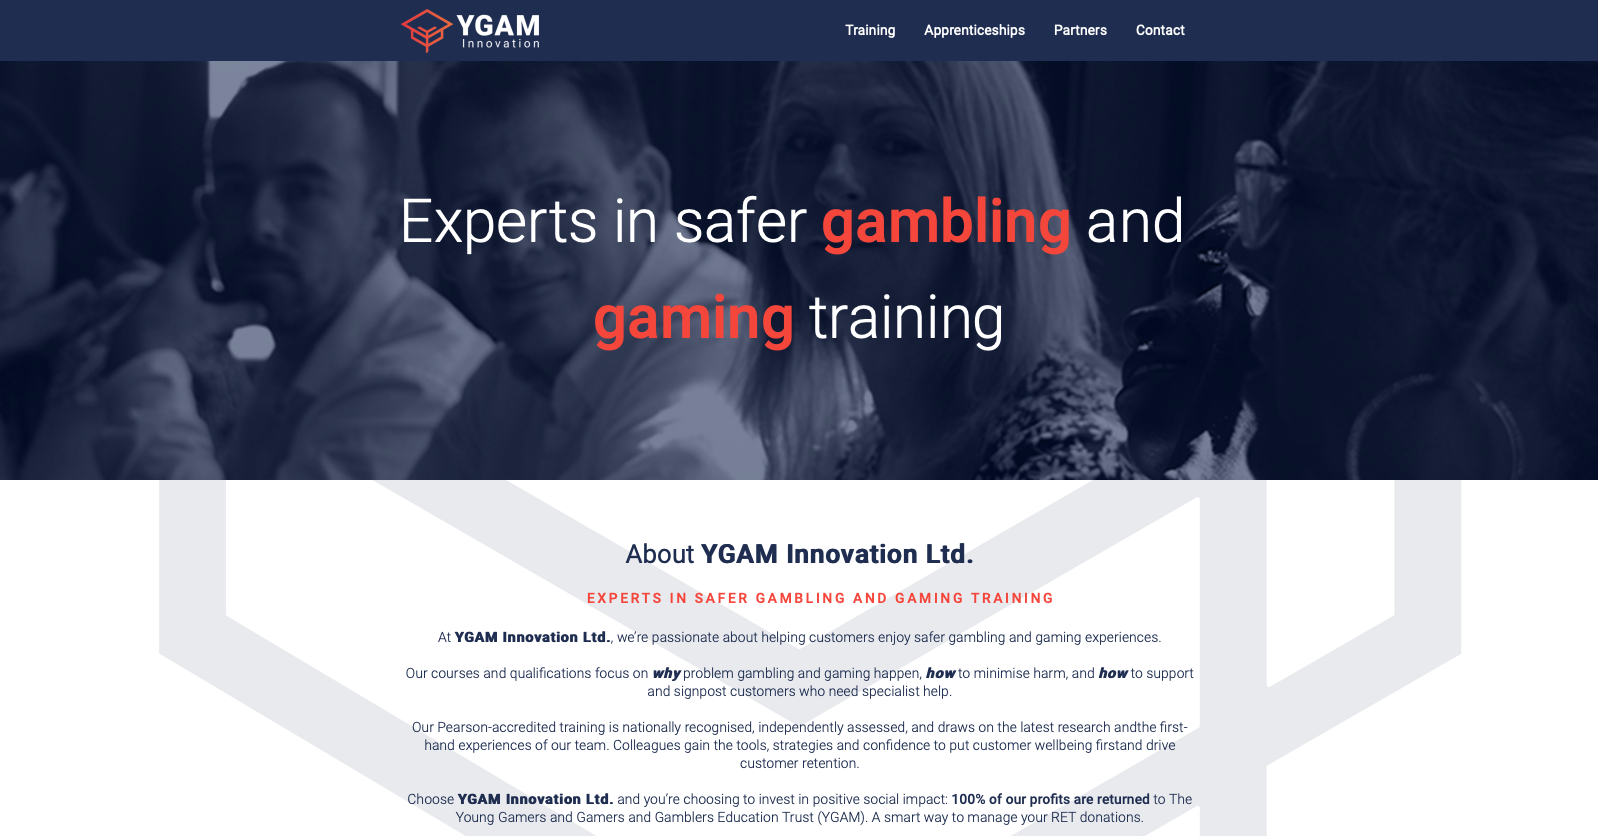 YGAM Innovation home page section